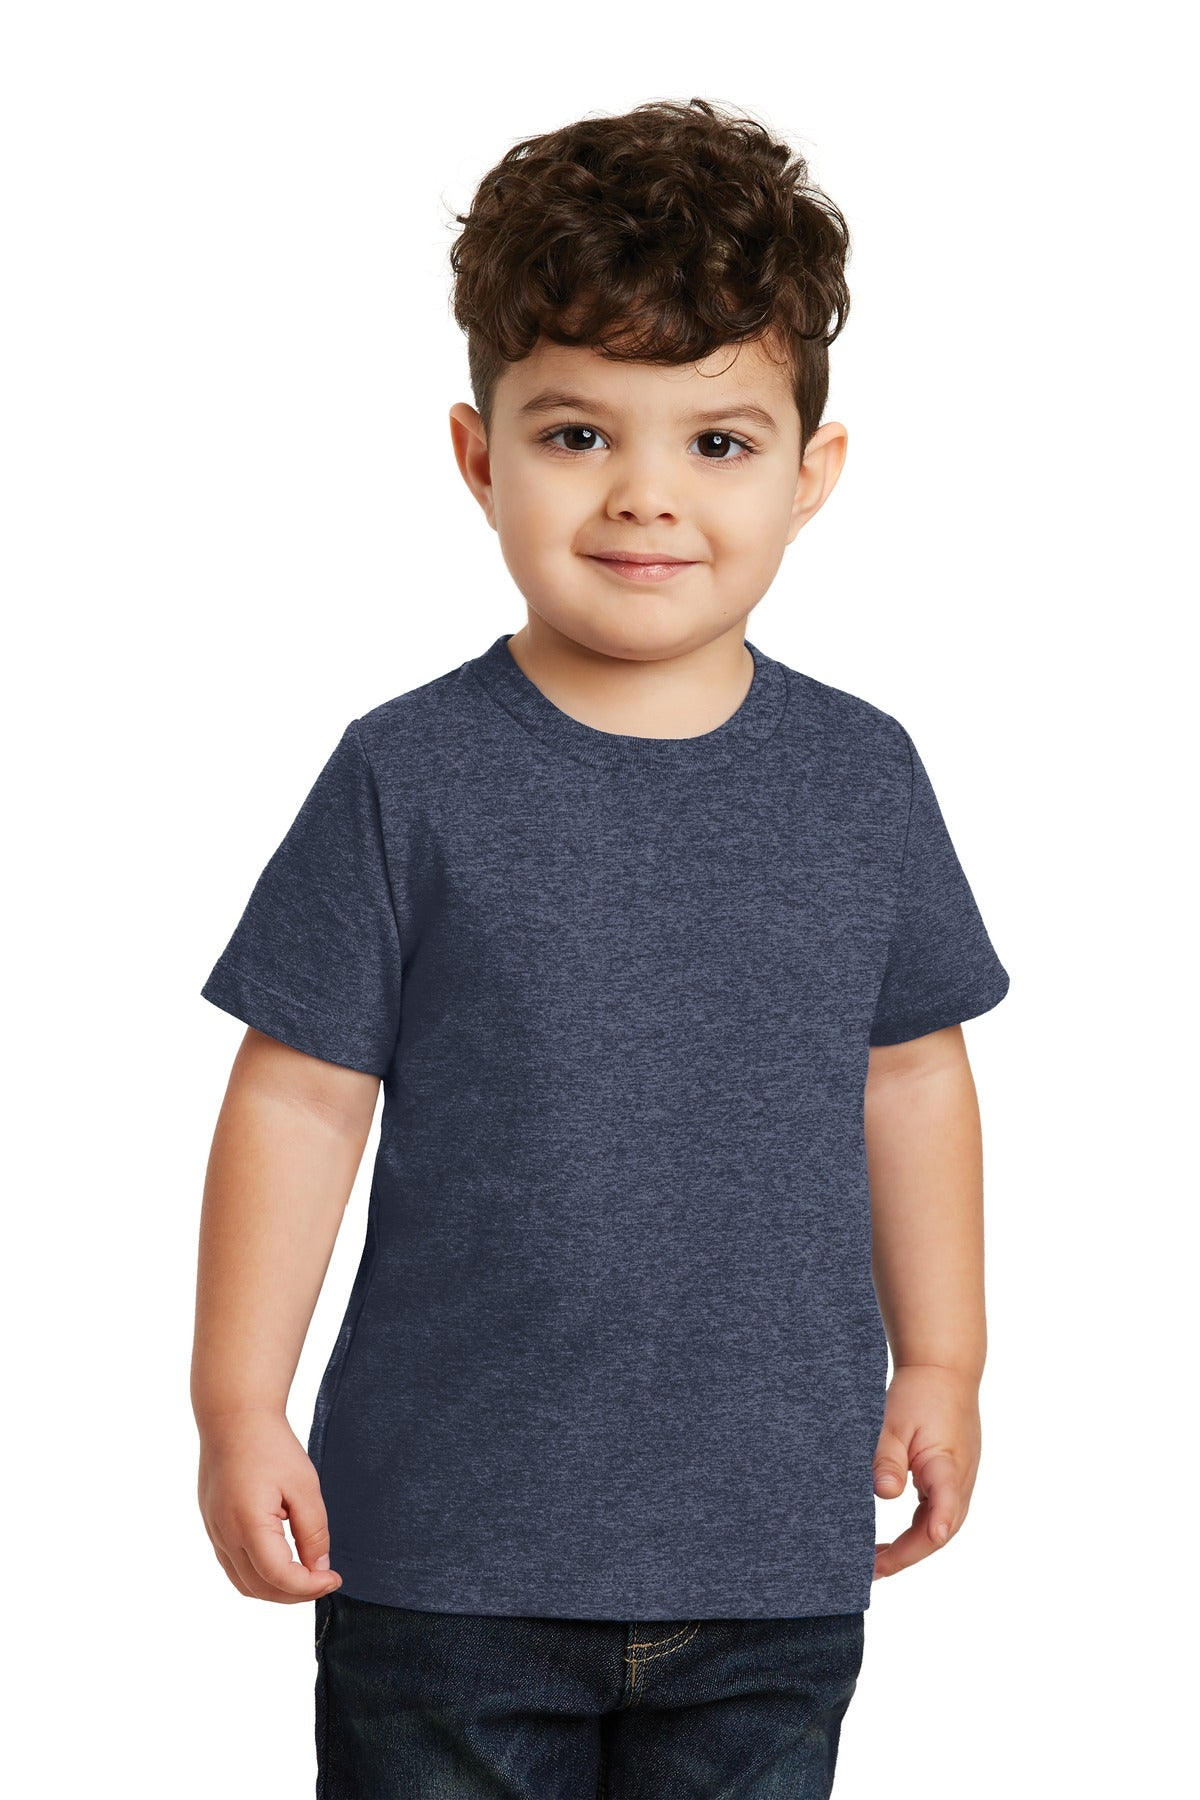 Heather Navy Port & Company Toddler Fan Favorite T-Shirt